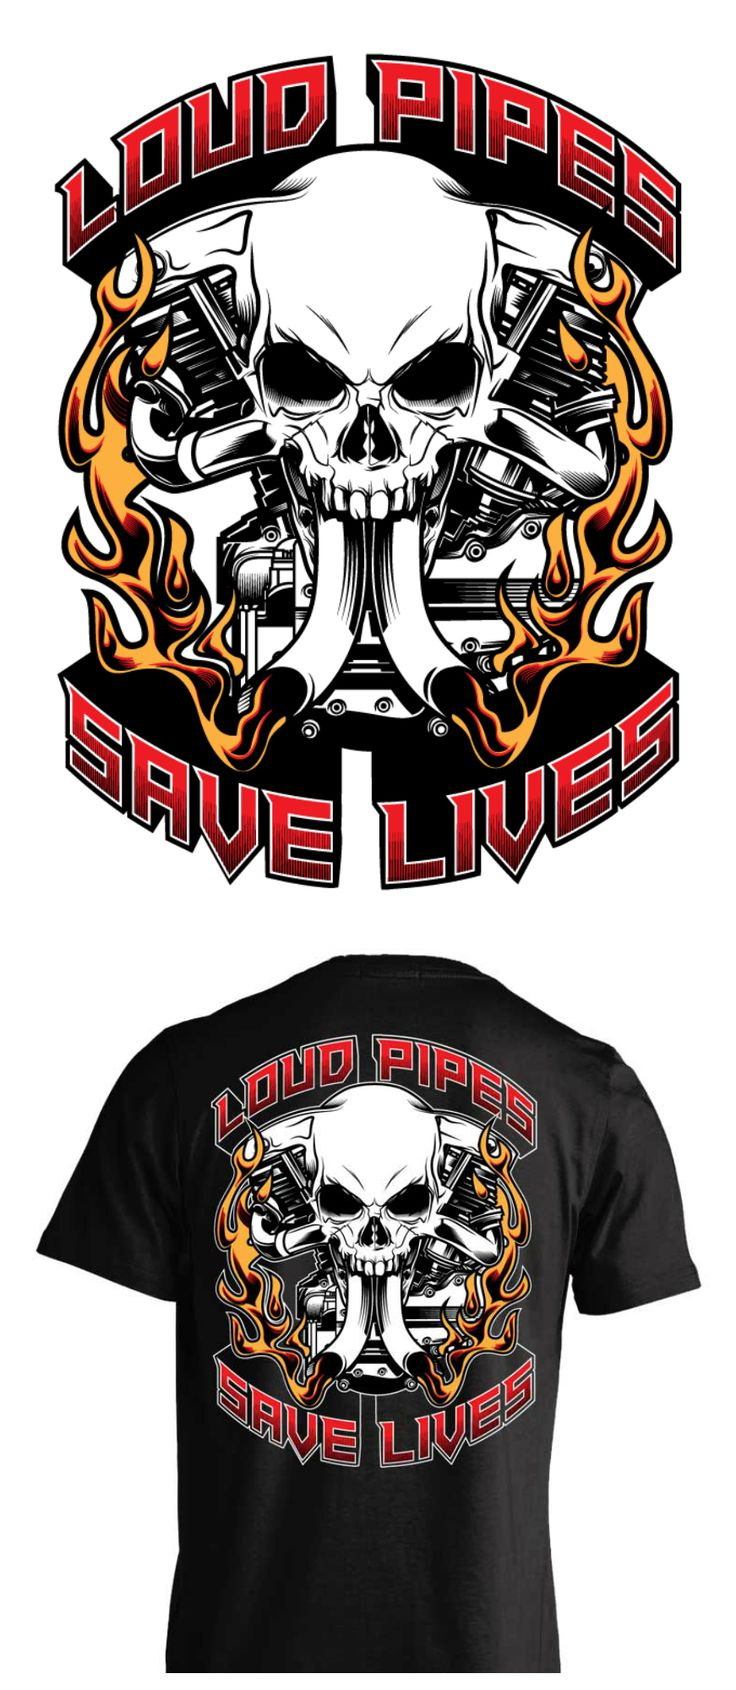 Loud pipes save lives motorcycle biker t-shirt. Awesome skull art and v-twin motorcycle engine.